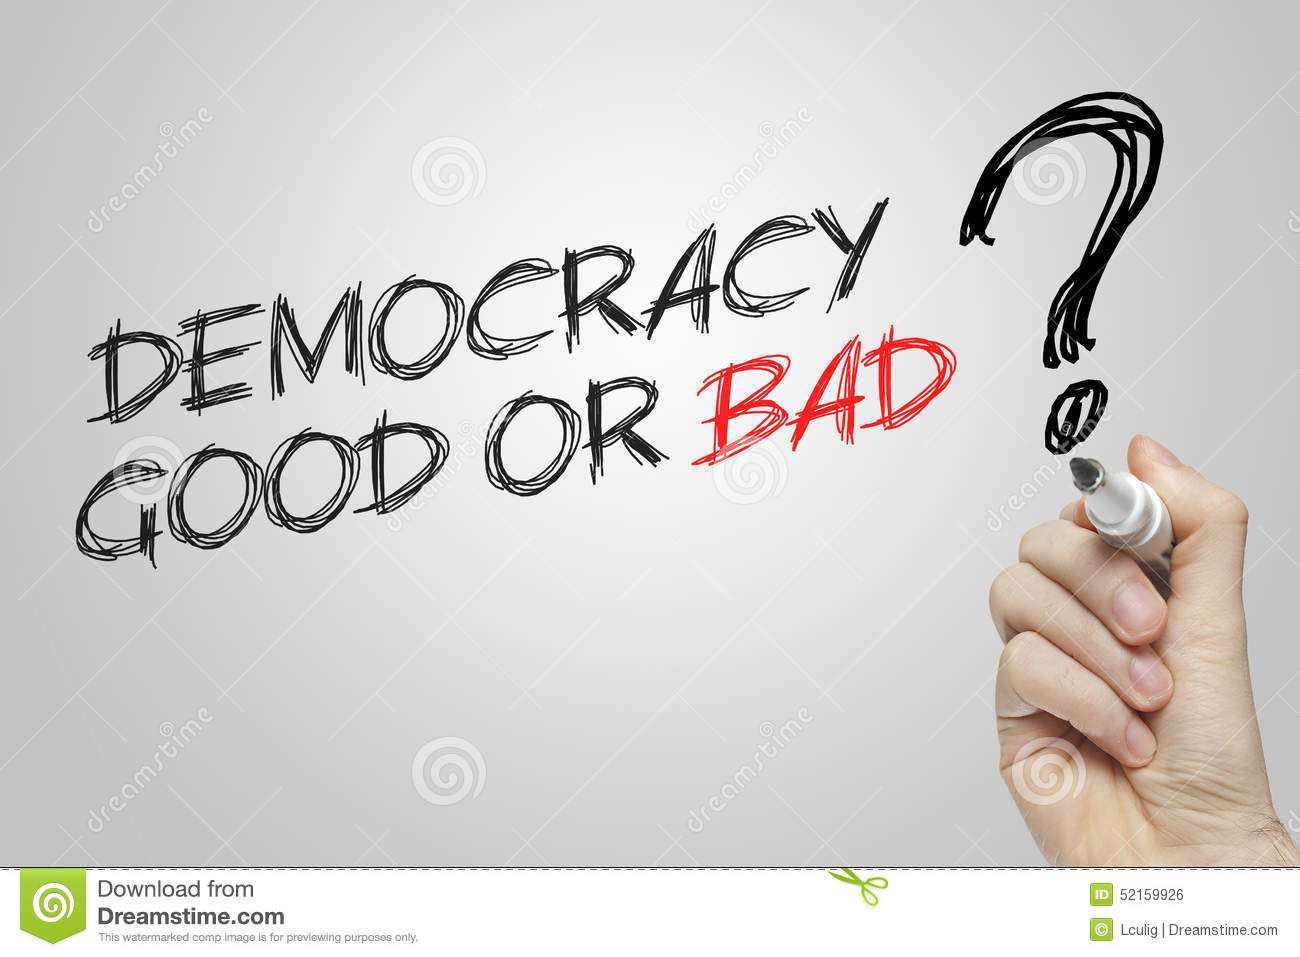 democracy is good or bad for india Sc's negative voting verdict, good or bad for democracy india is often being quoted as largest, youngest and most vibrant democracy where political representatives functions in best interest of its people.